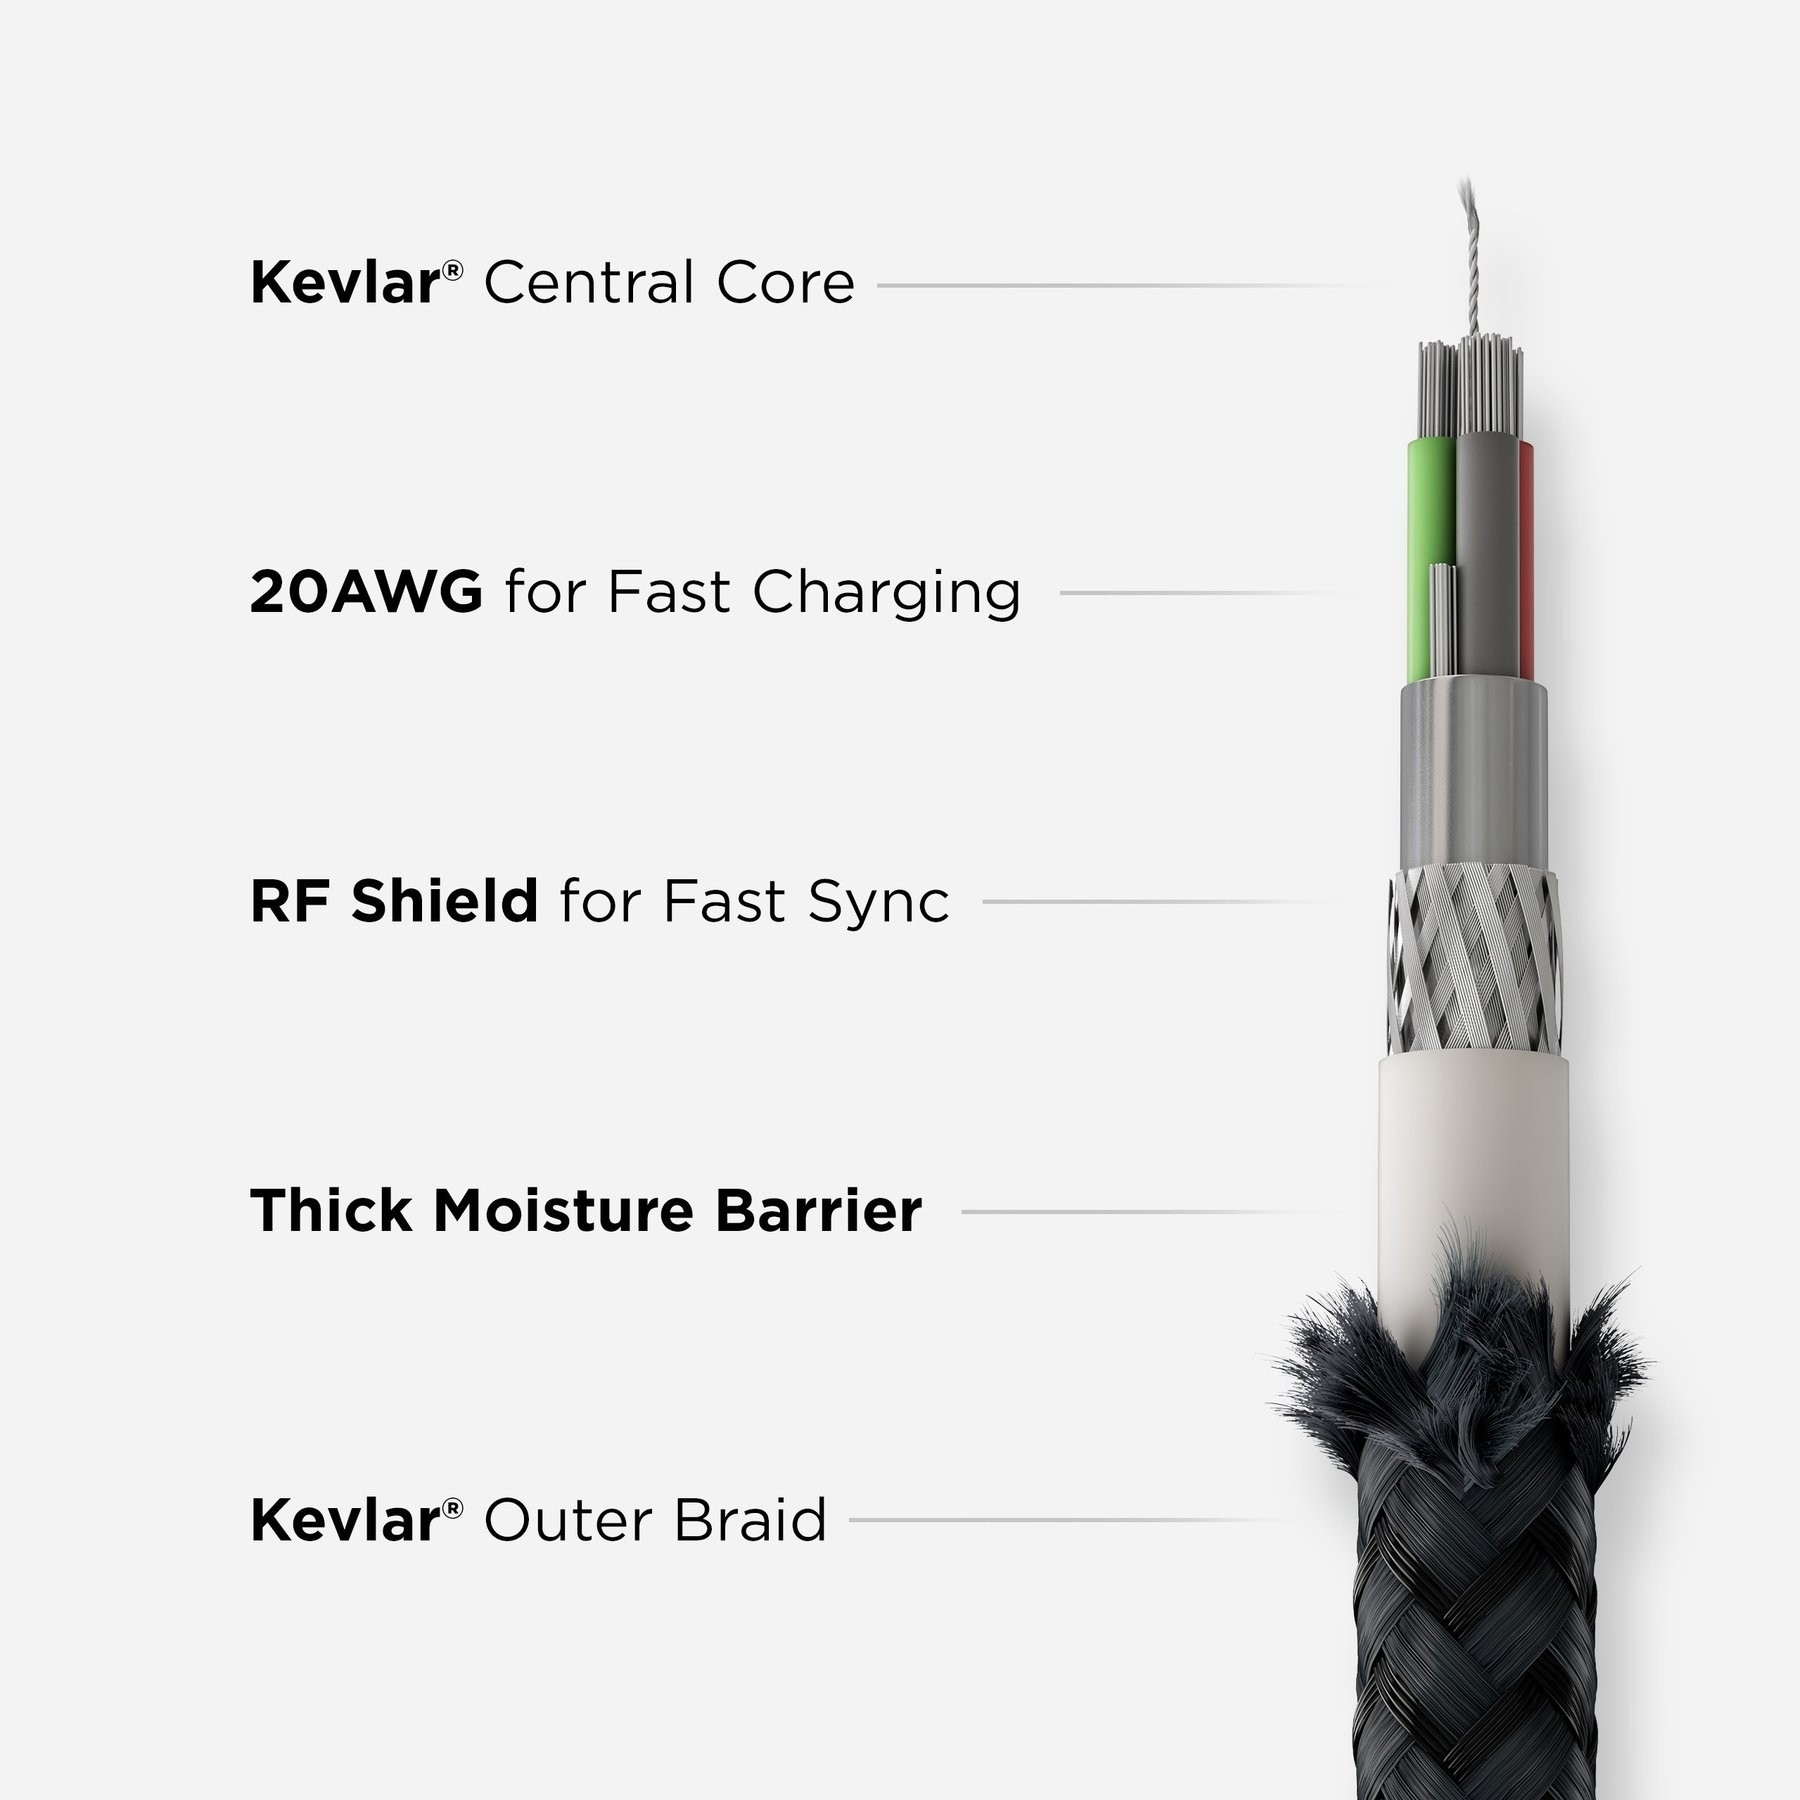 Nomad - USB-C cable with Kevlar, 3.0 m, NM01A1C000